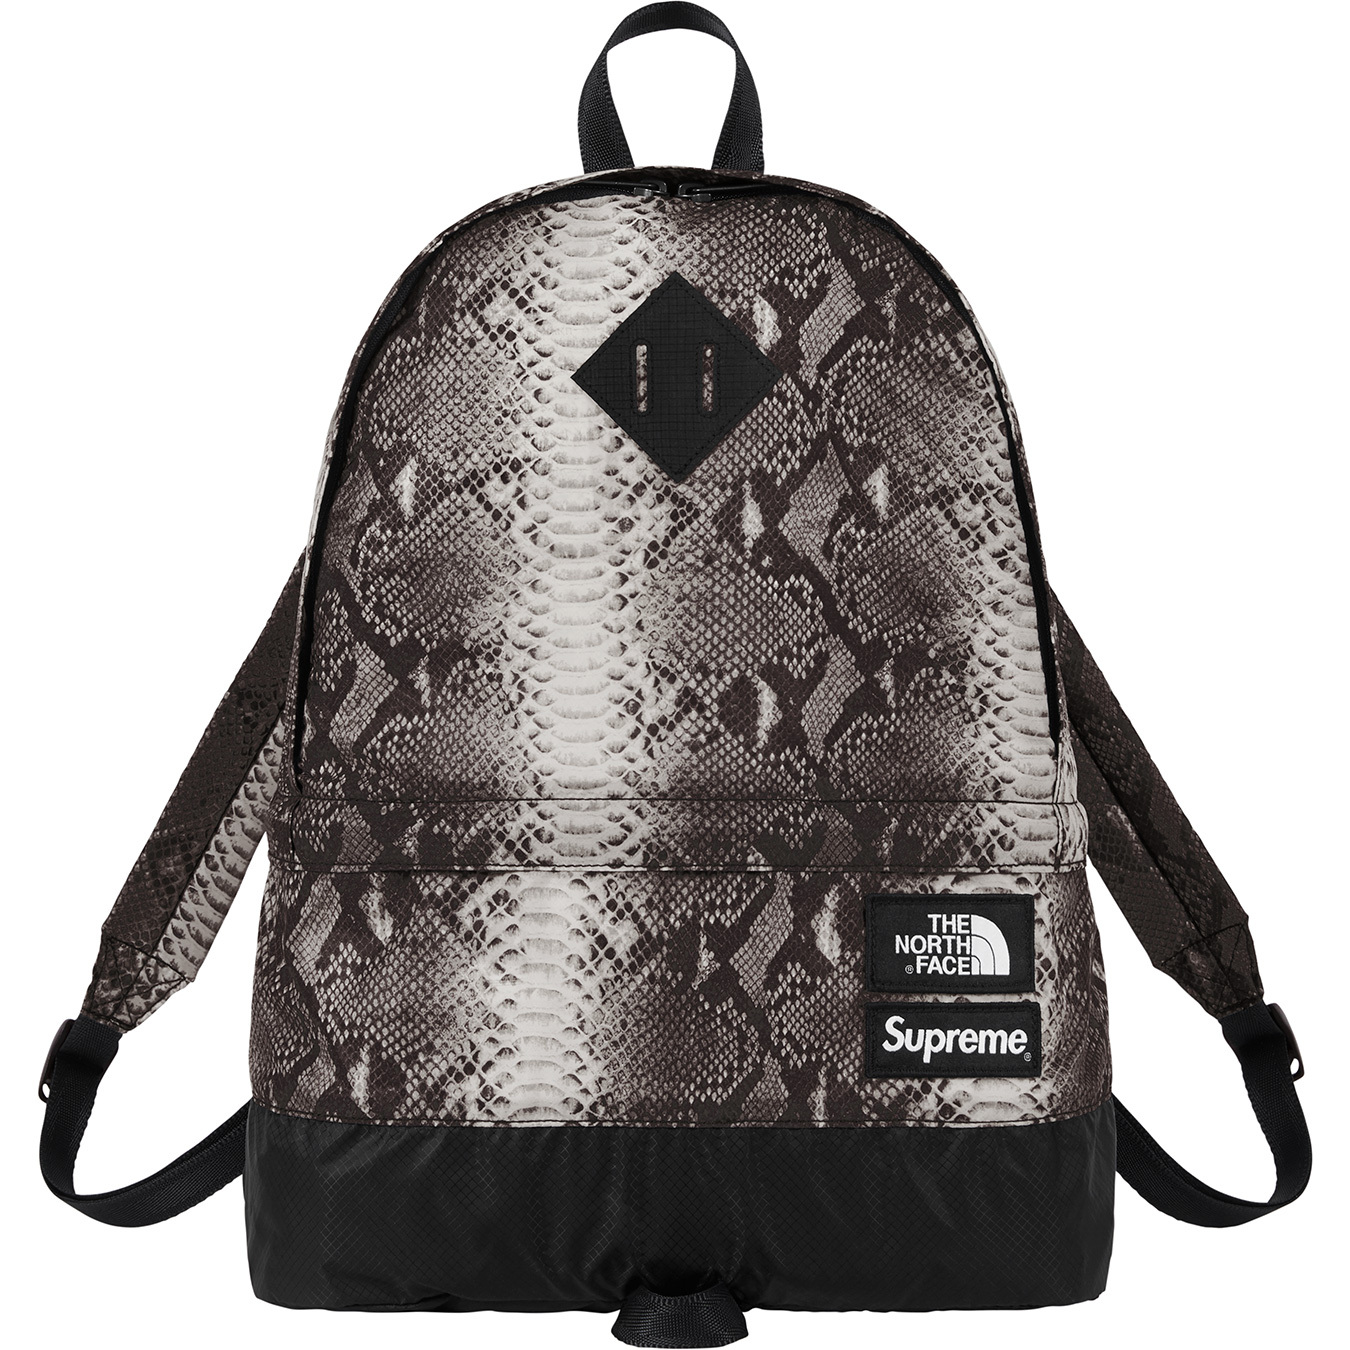 supreme-the-north-face-18ss-2nd-delivery-release-week16-20180609-snakeskin-day-pack